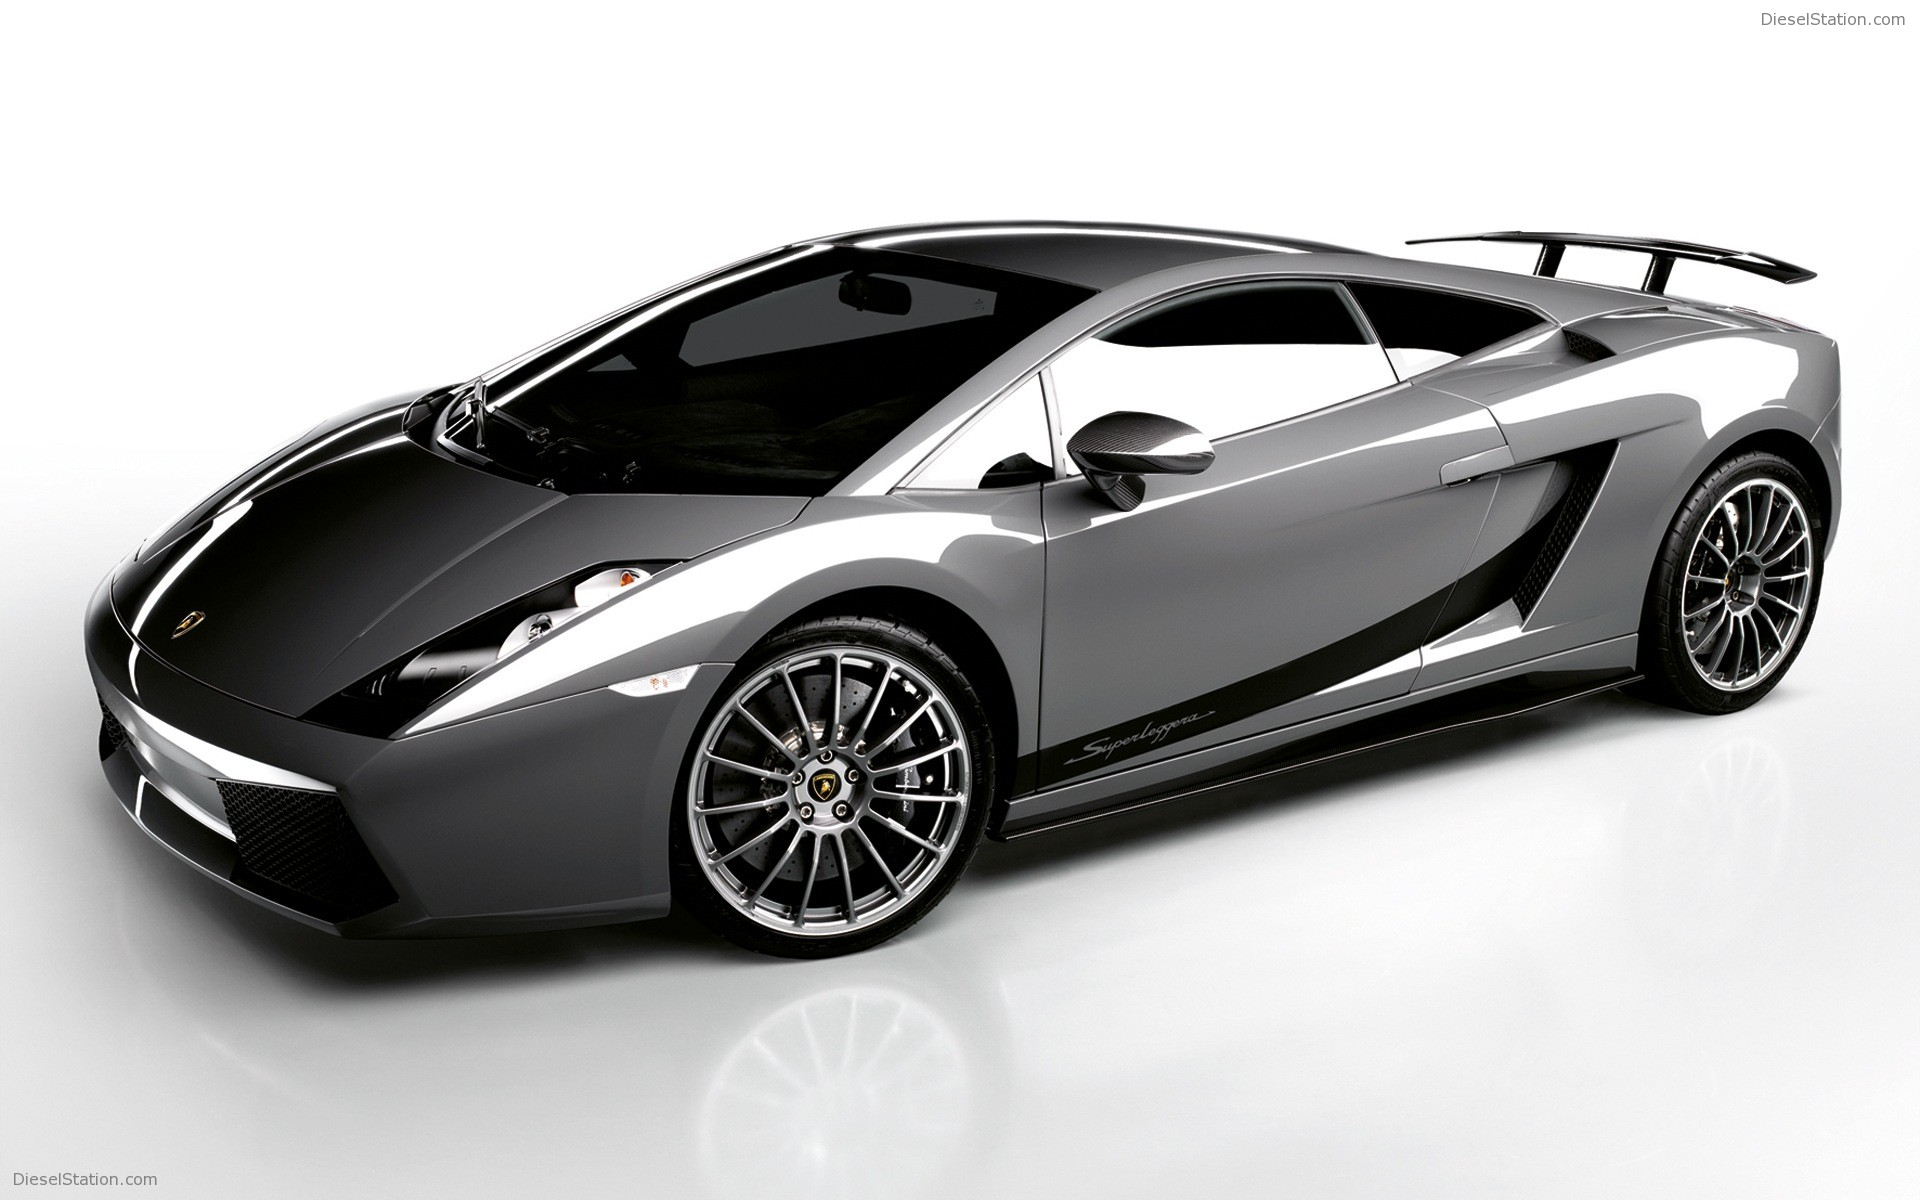 Another-Lambo-HD-wallpaper-wp3003265